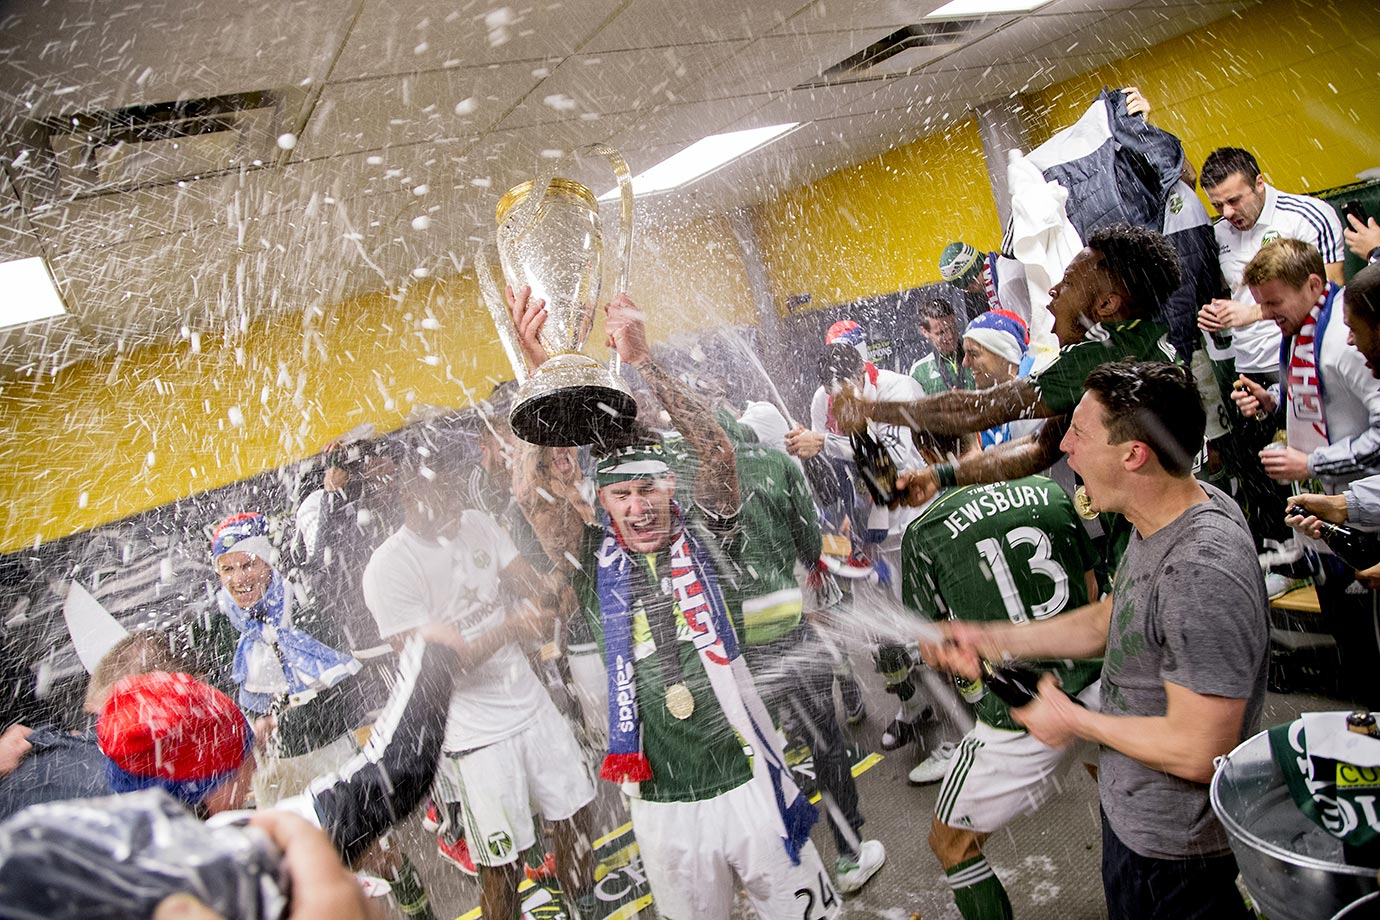 The Portland Timbers celebrate winning the MLS Cup at MAPFRE Stadium in Columbus, Ohio.